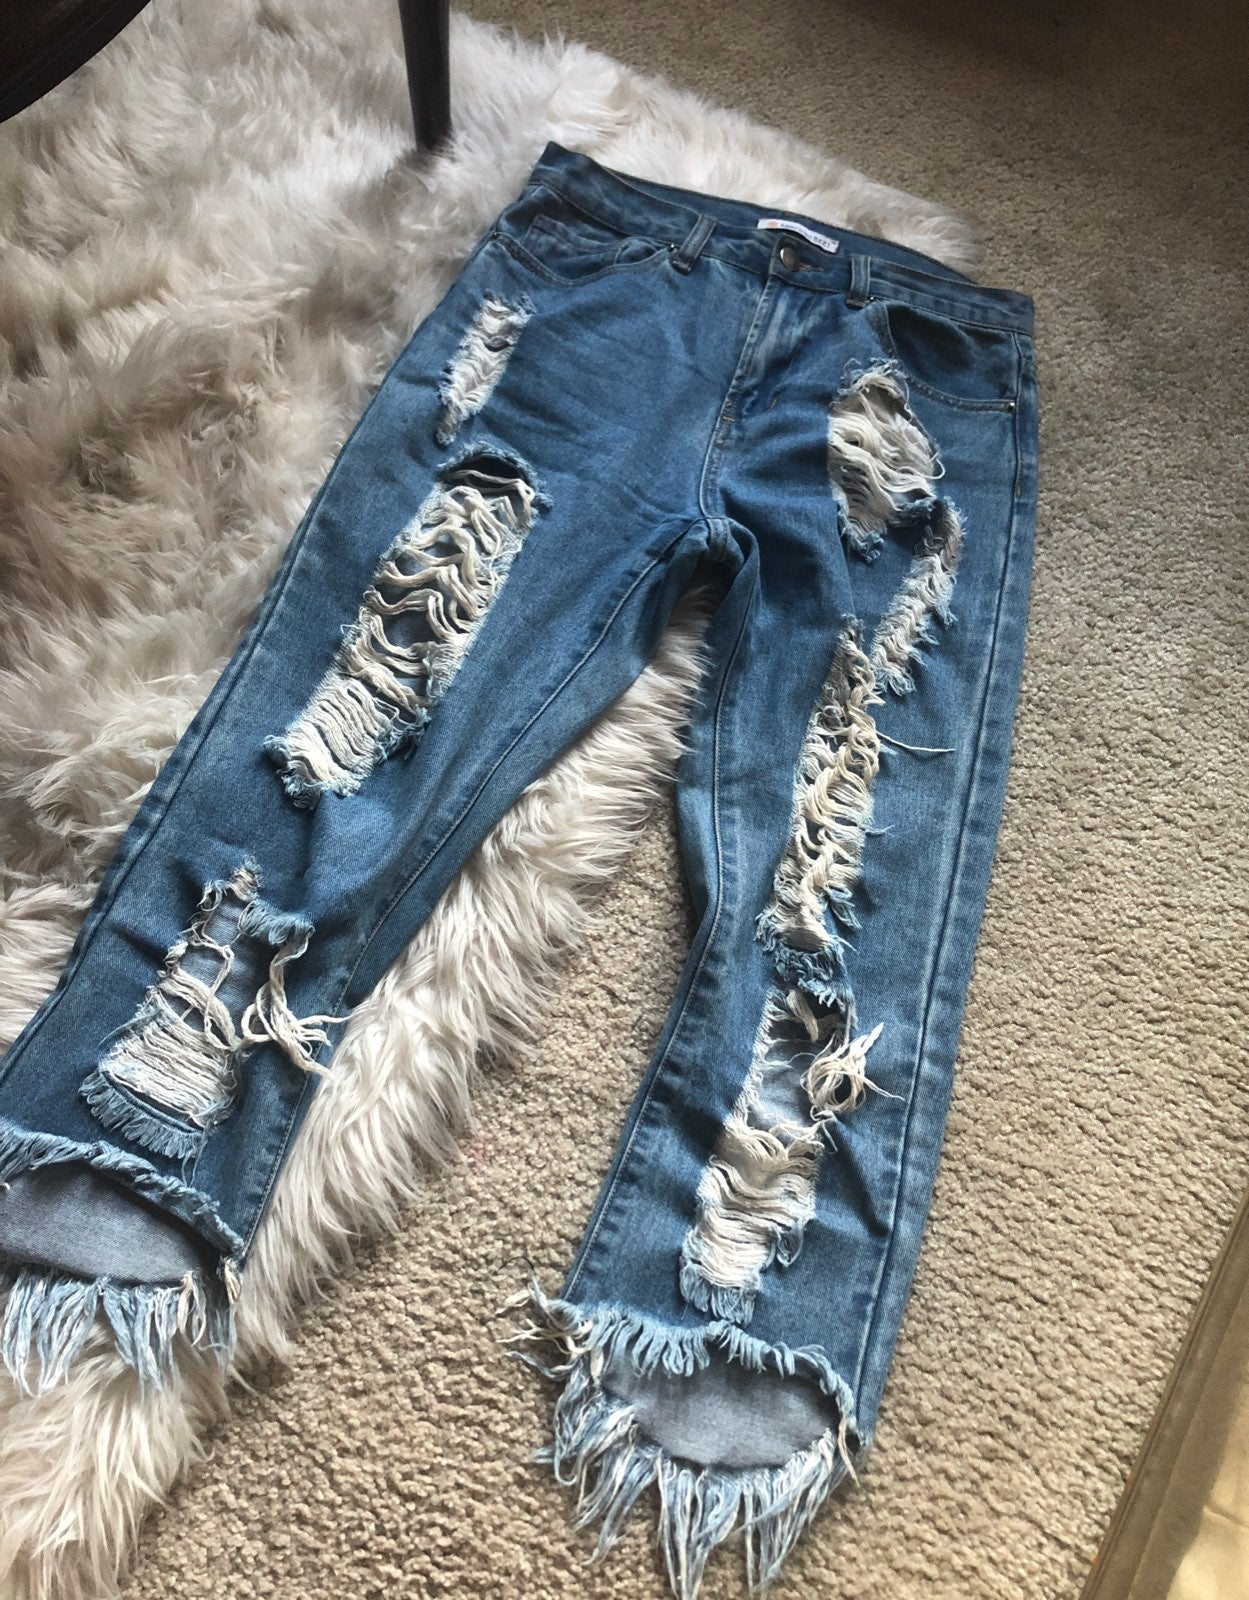 Rip jeans